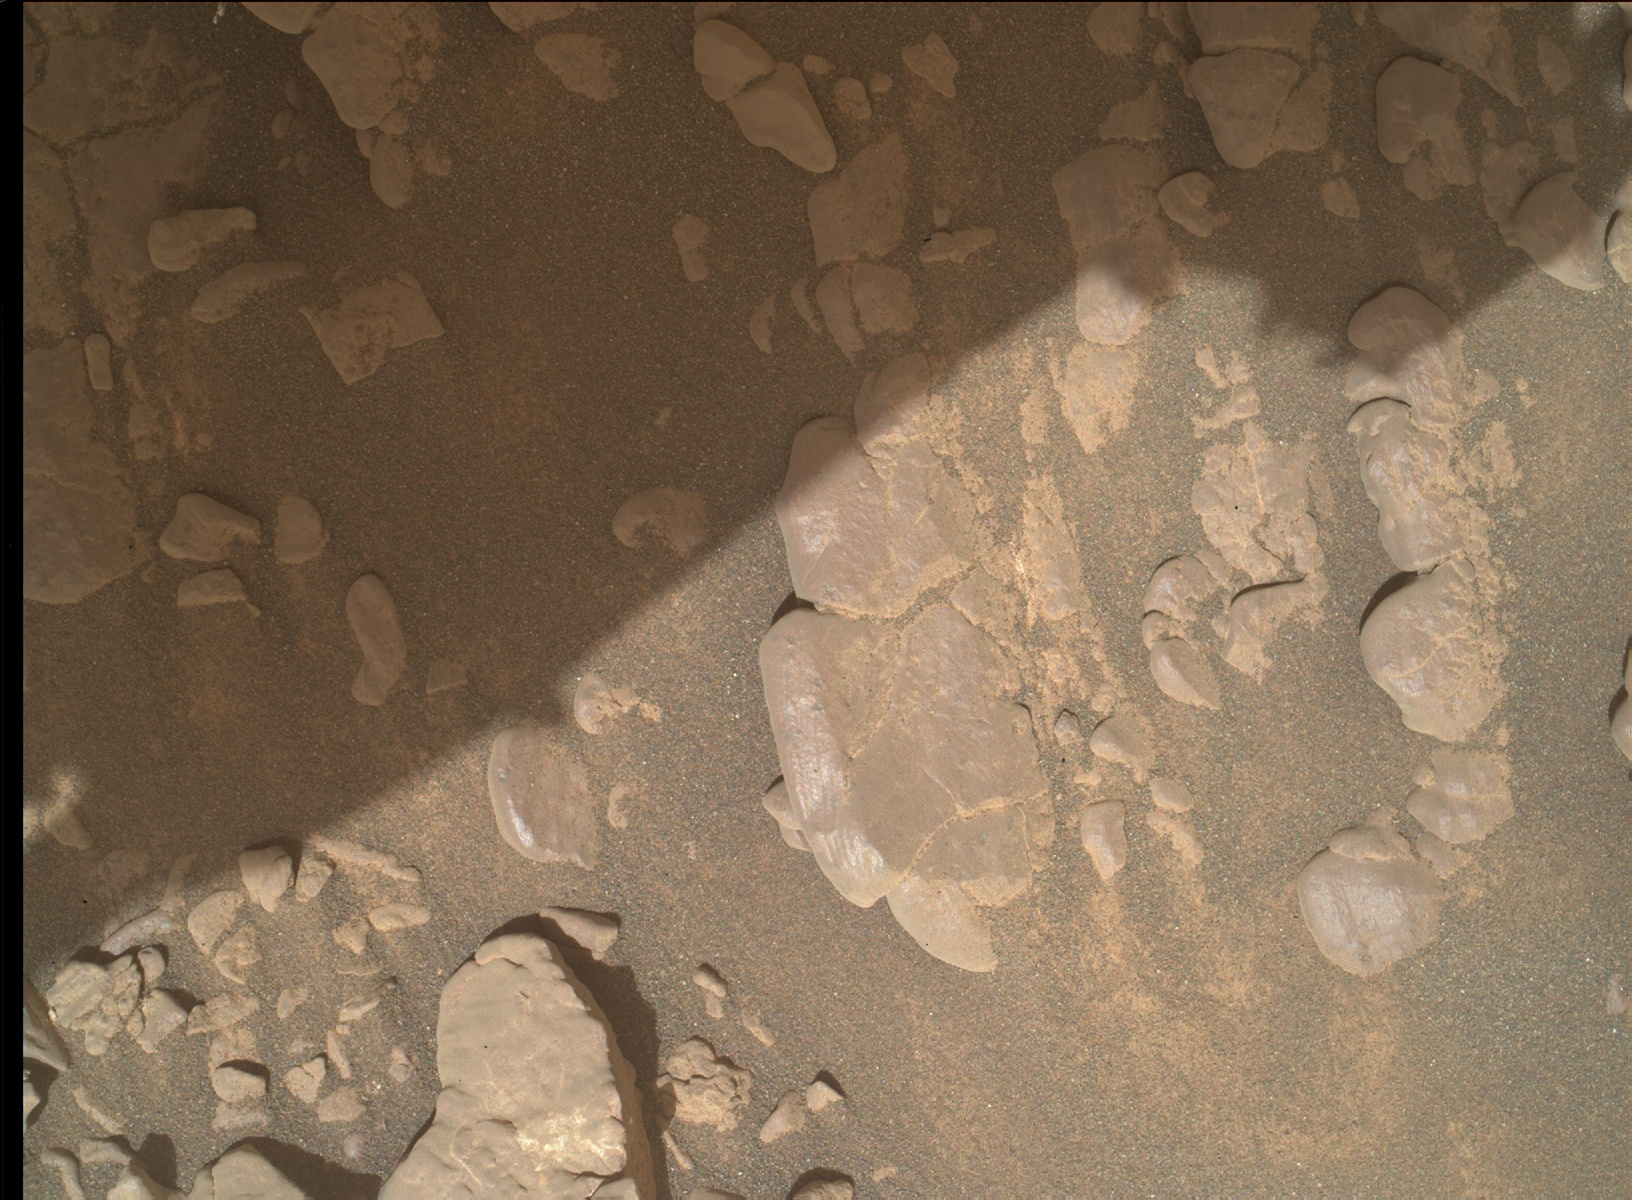 Nasa's Mars rover Curiosity acquired this image using its Mars Hand Lens Imager (MAHLI) on Sol 2942